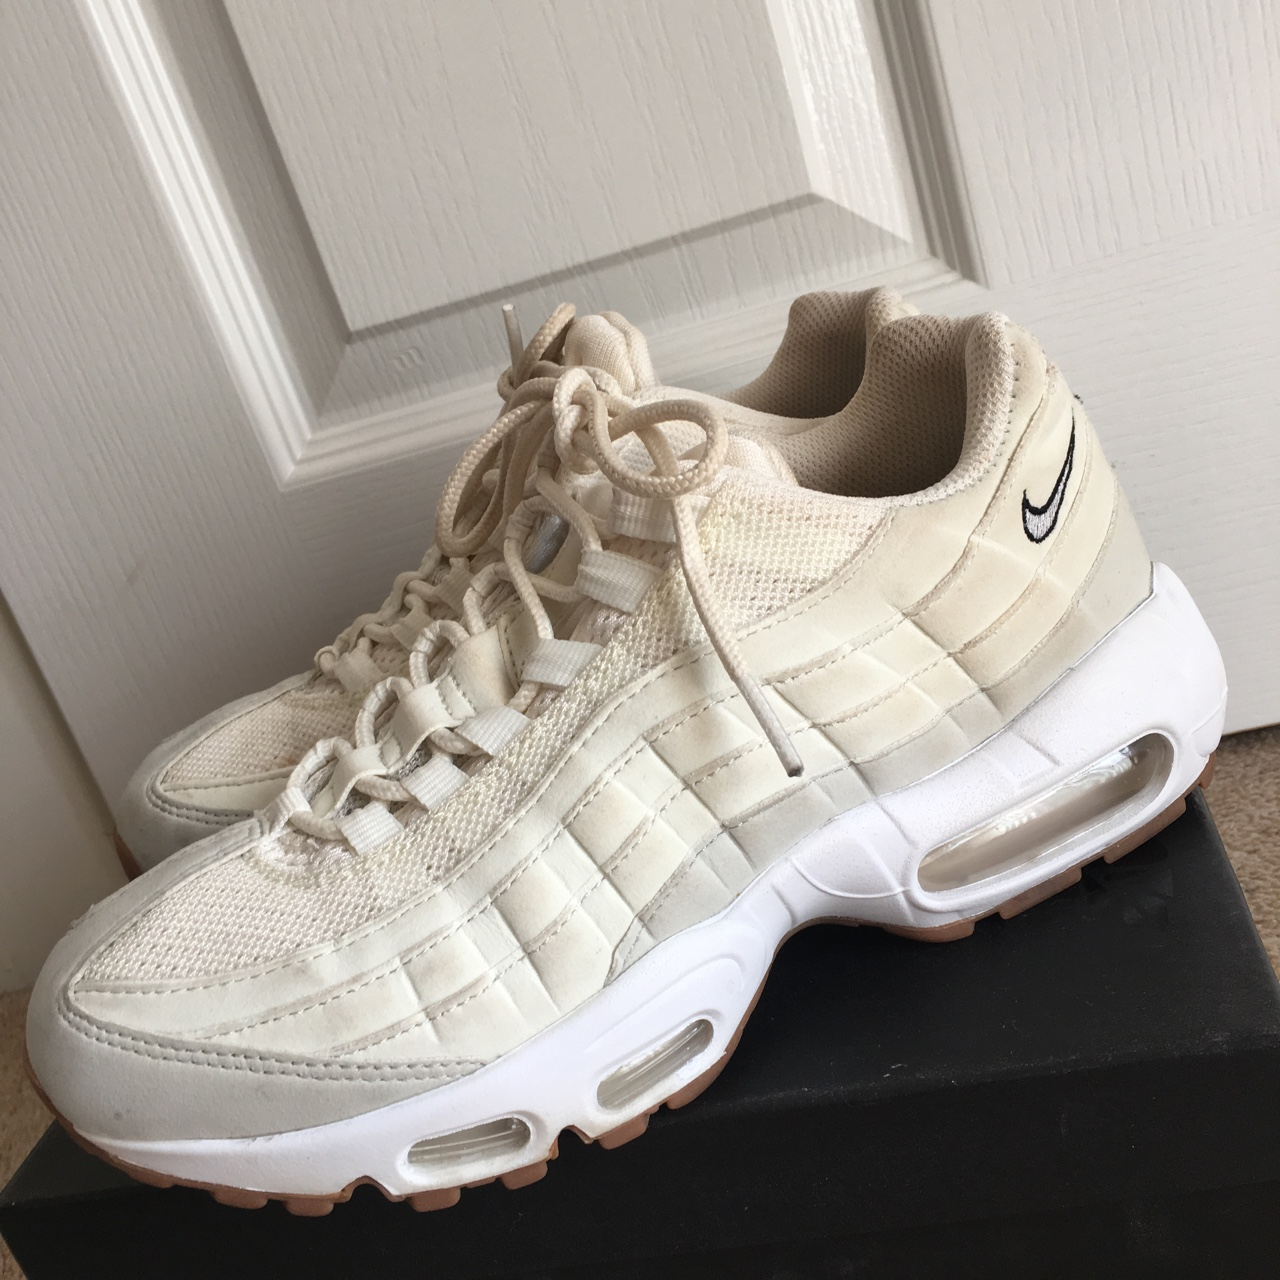 Air max 95s in cream and brown , size 5